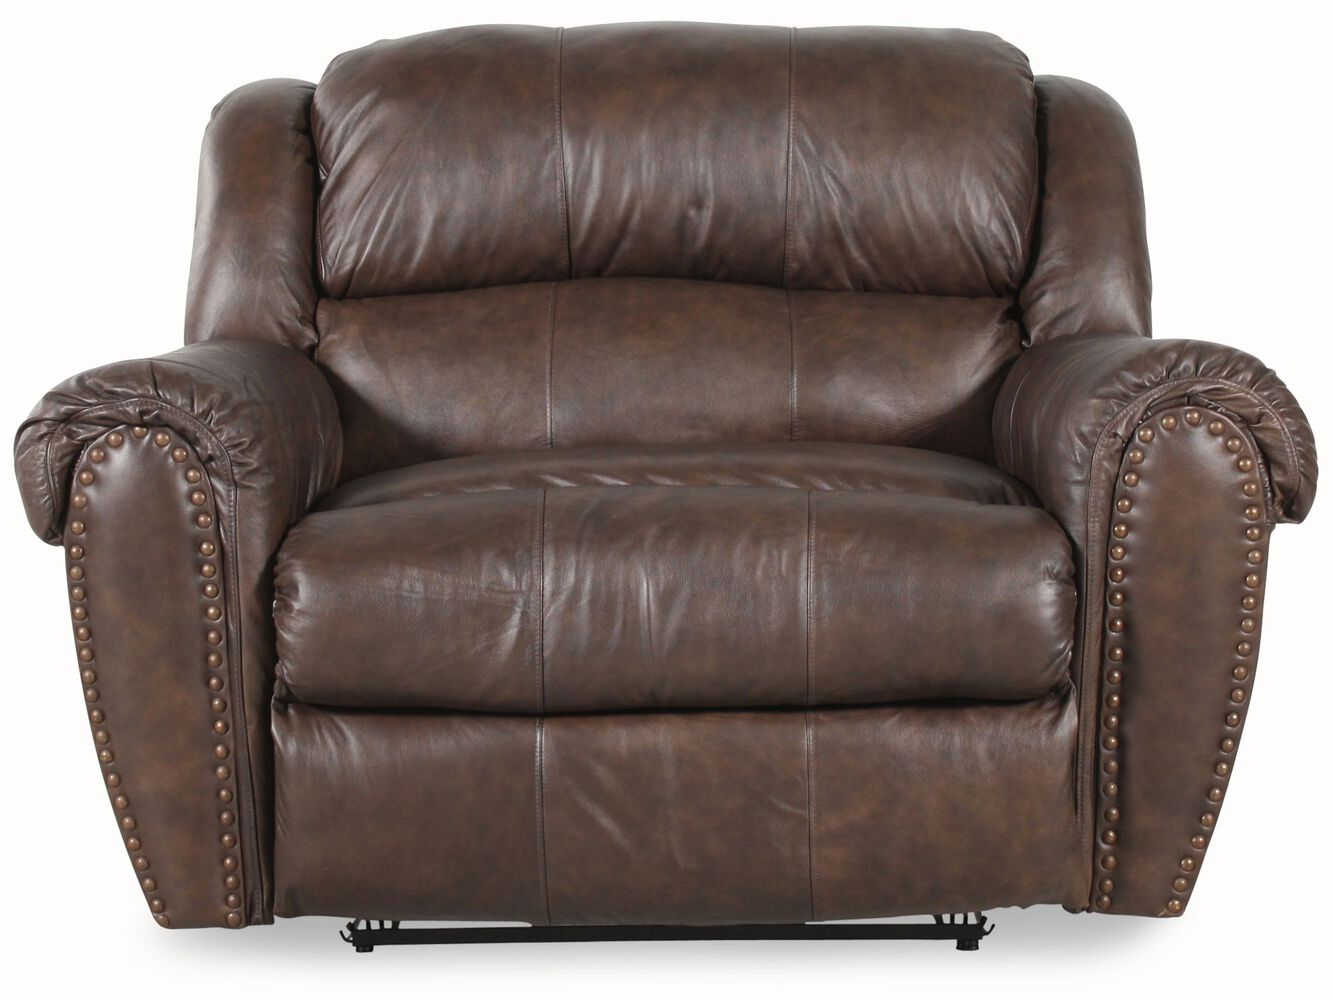 Lane summerlin snuggler leather recliner mathis brothers for Lane furniture